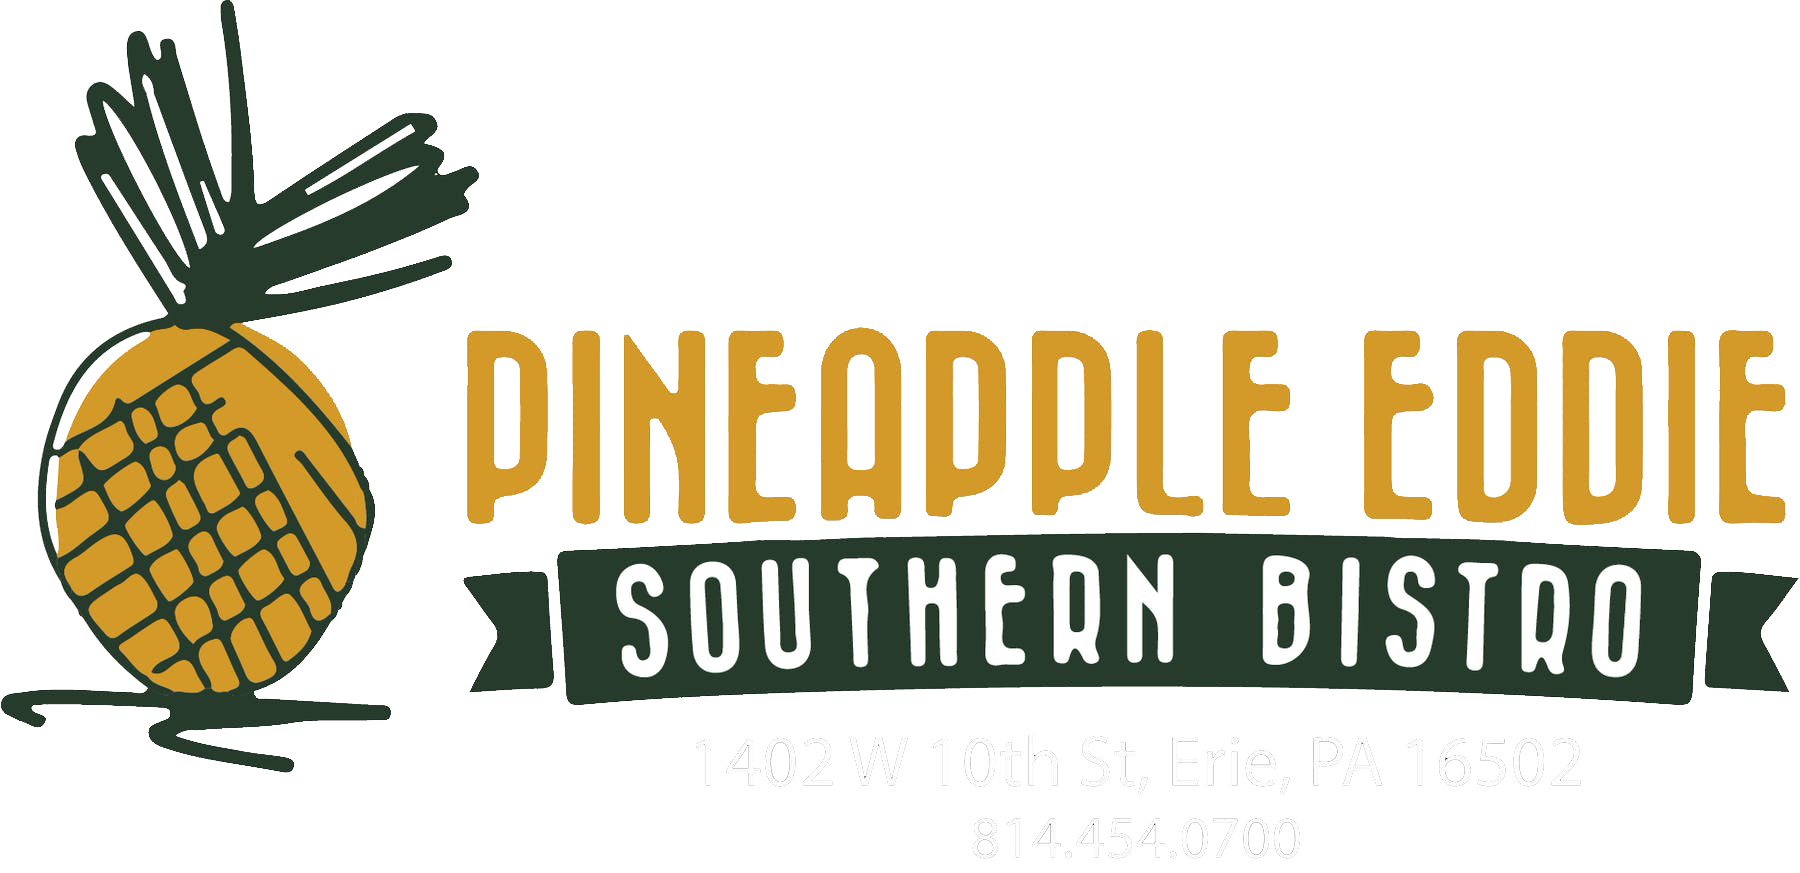 Pineapple Eddie Southern Bistro Home